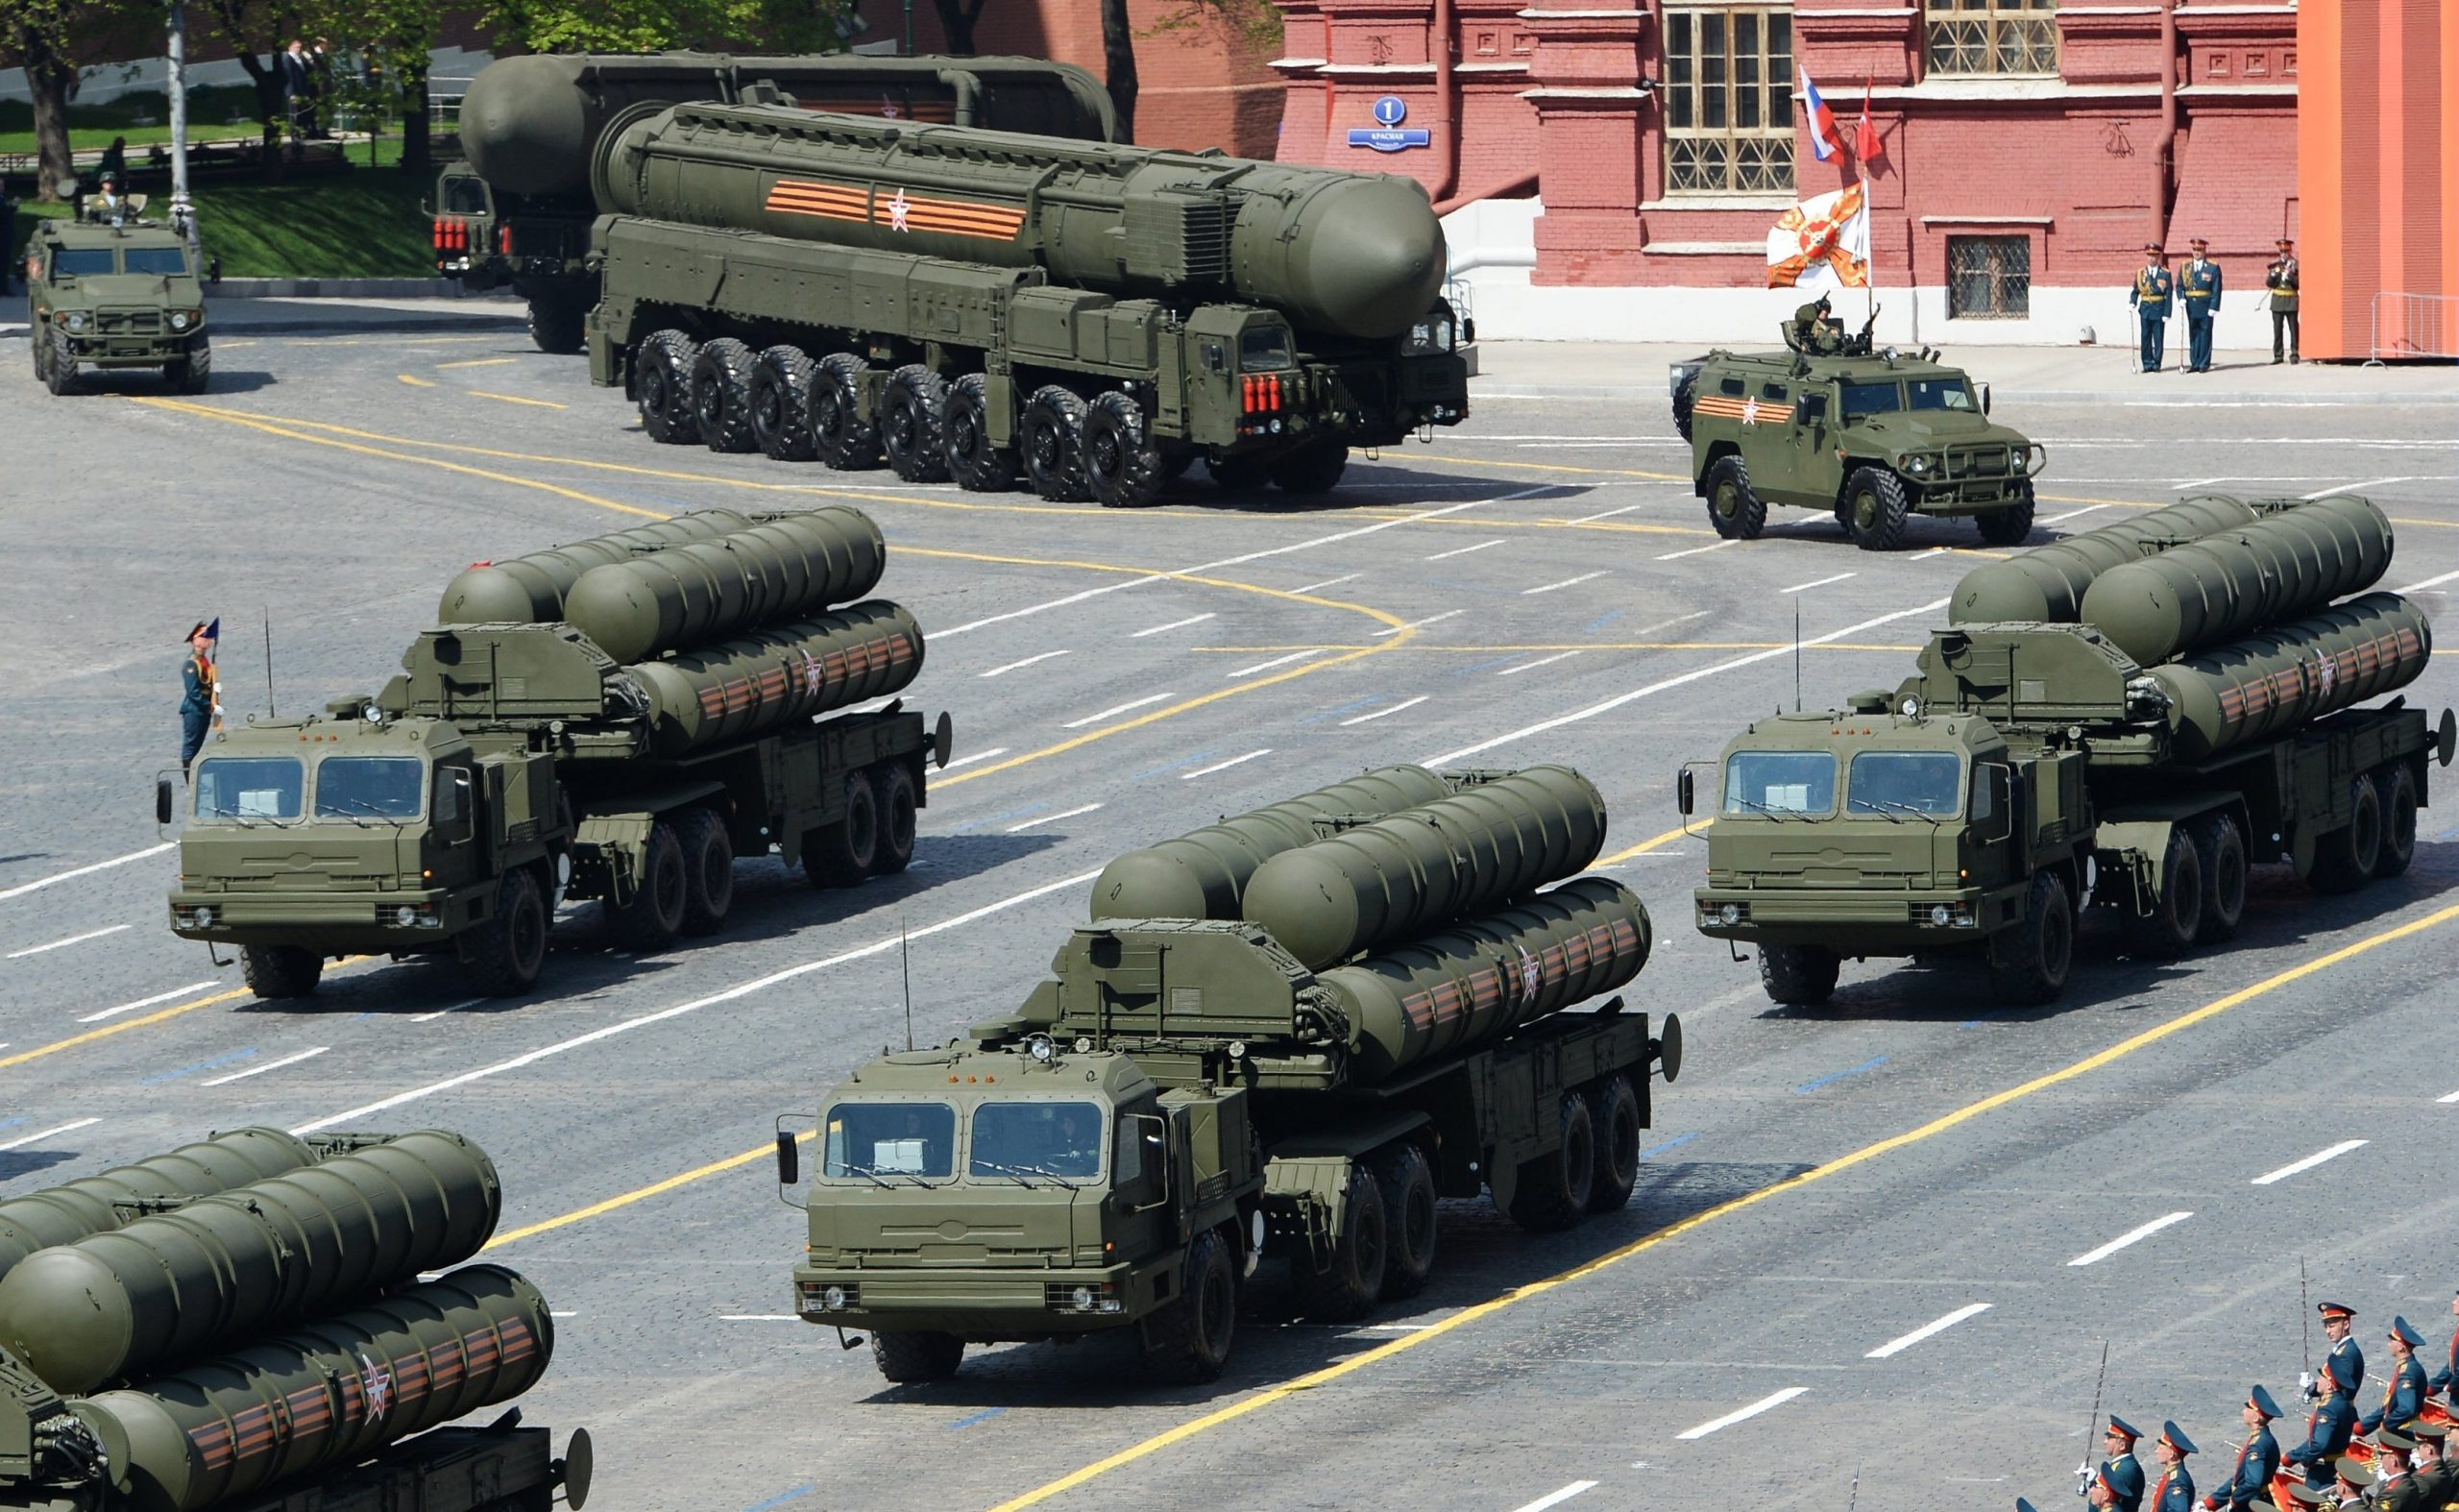 S-400 Triumf (SA-21 Growler) medium- and long-range surface-to-air missile systems